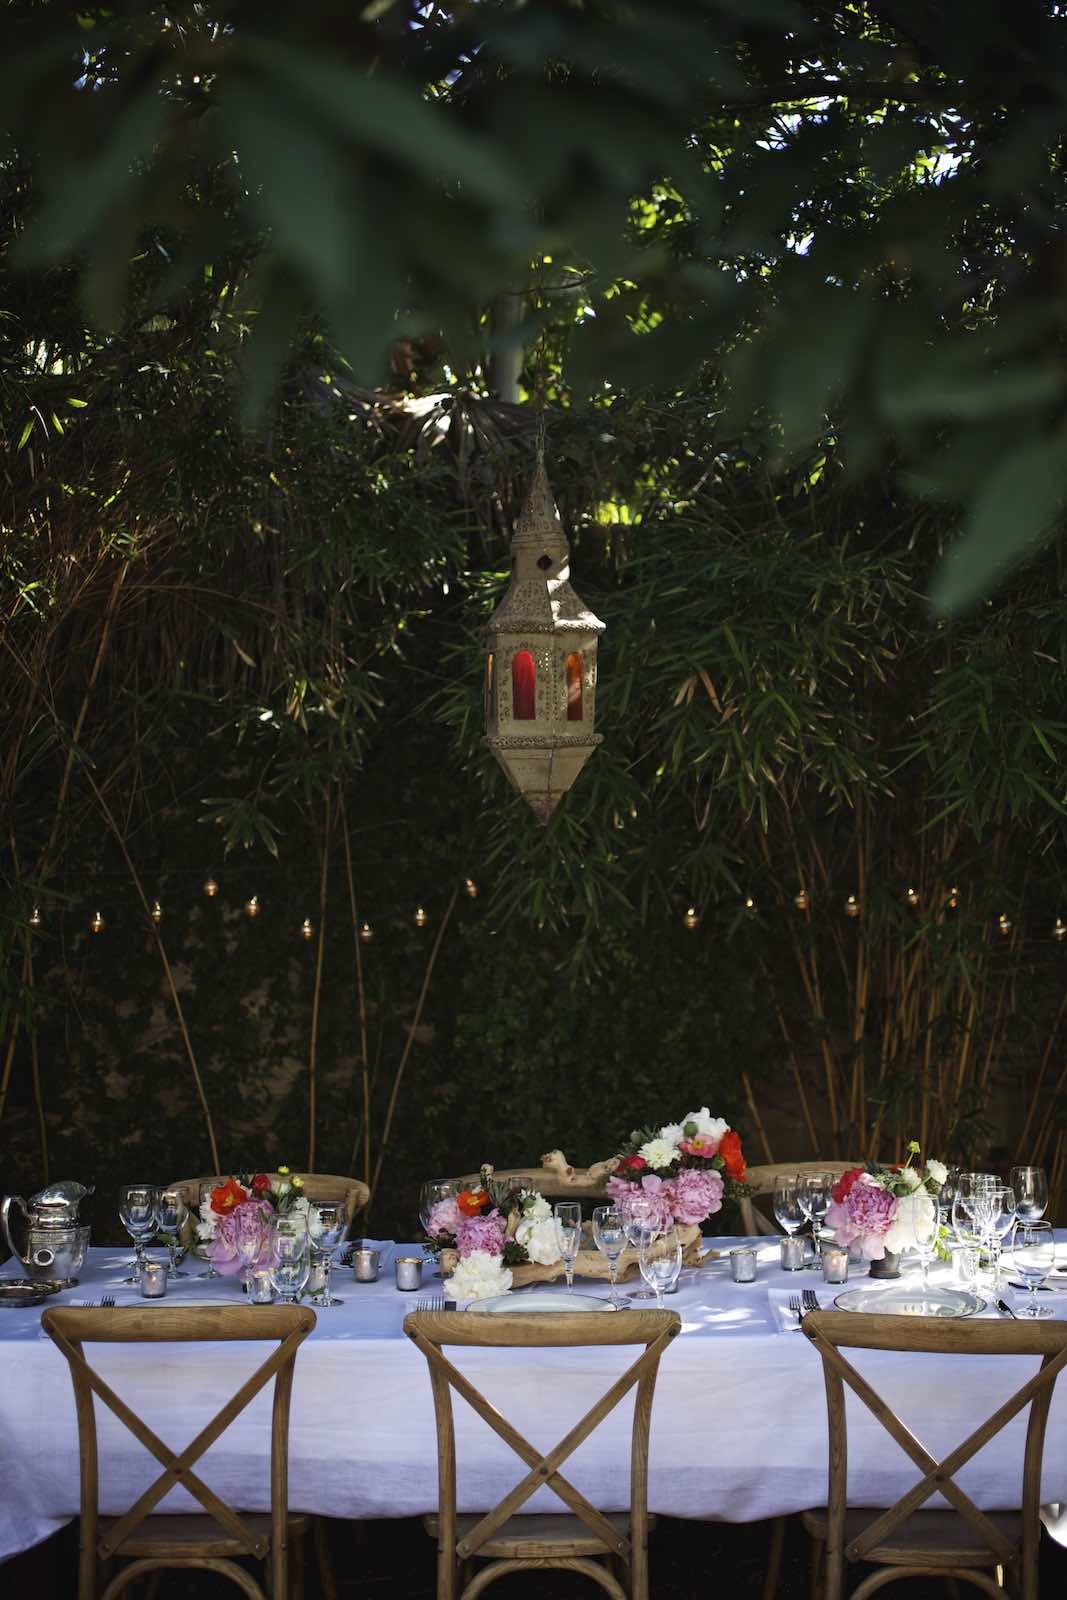 Jody Horton Photography - Floral, outdoor dinner table with bamboo and hanging lights.